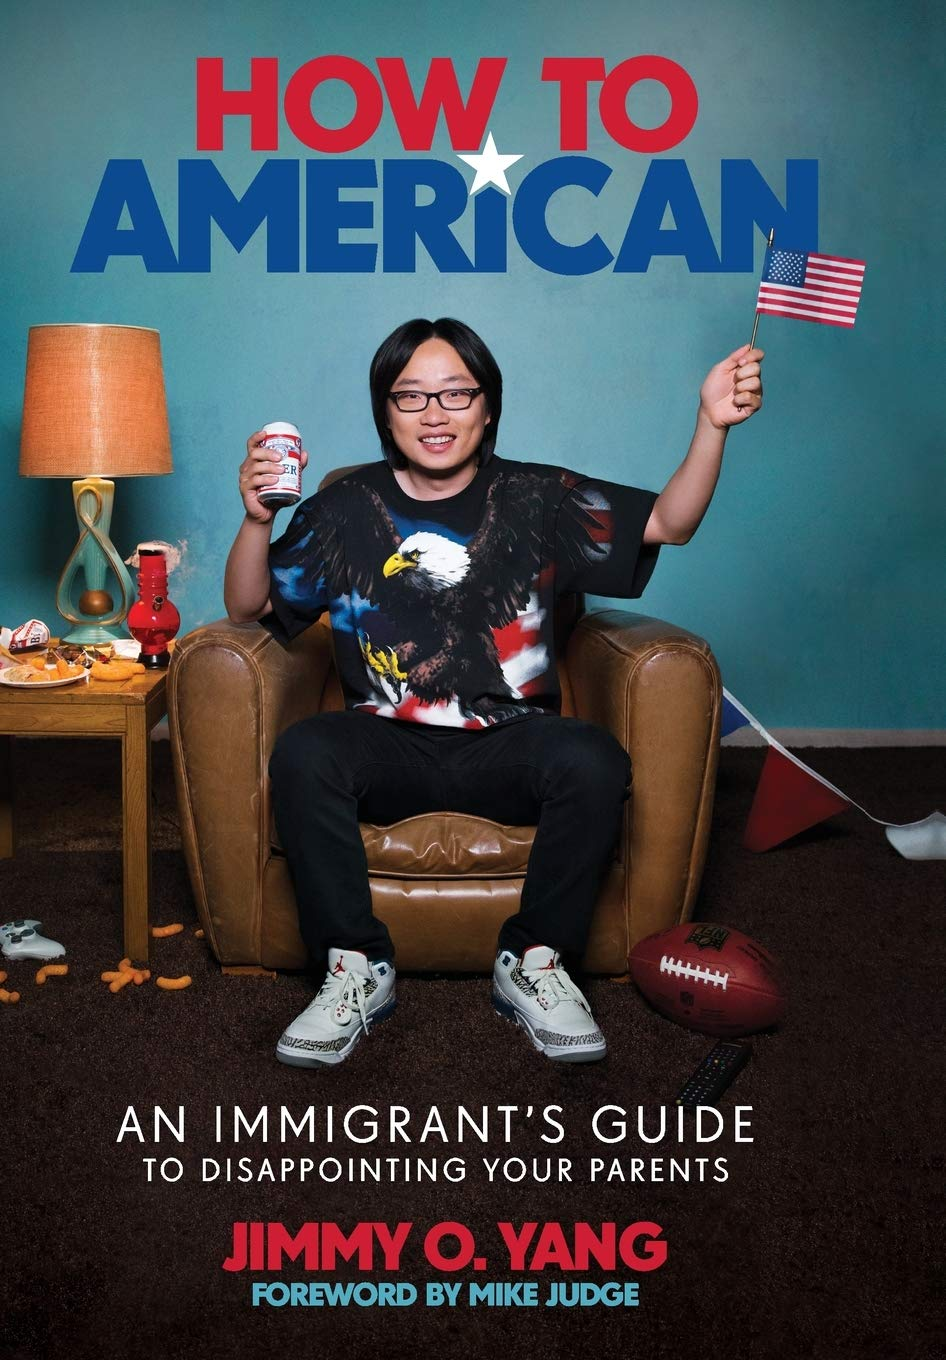 Amazon.com: How to American: An Immigrant's Guide to Disappointing Your  Parents (9780306903496): Yang, Jimmy O., Judge, Mike: Books